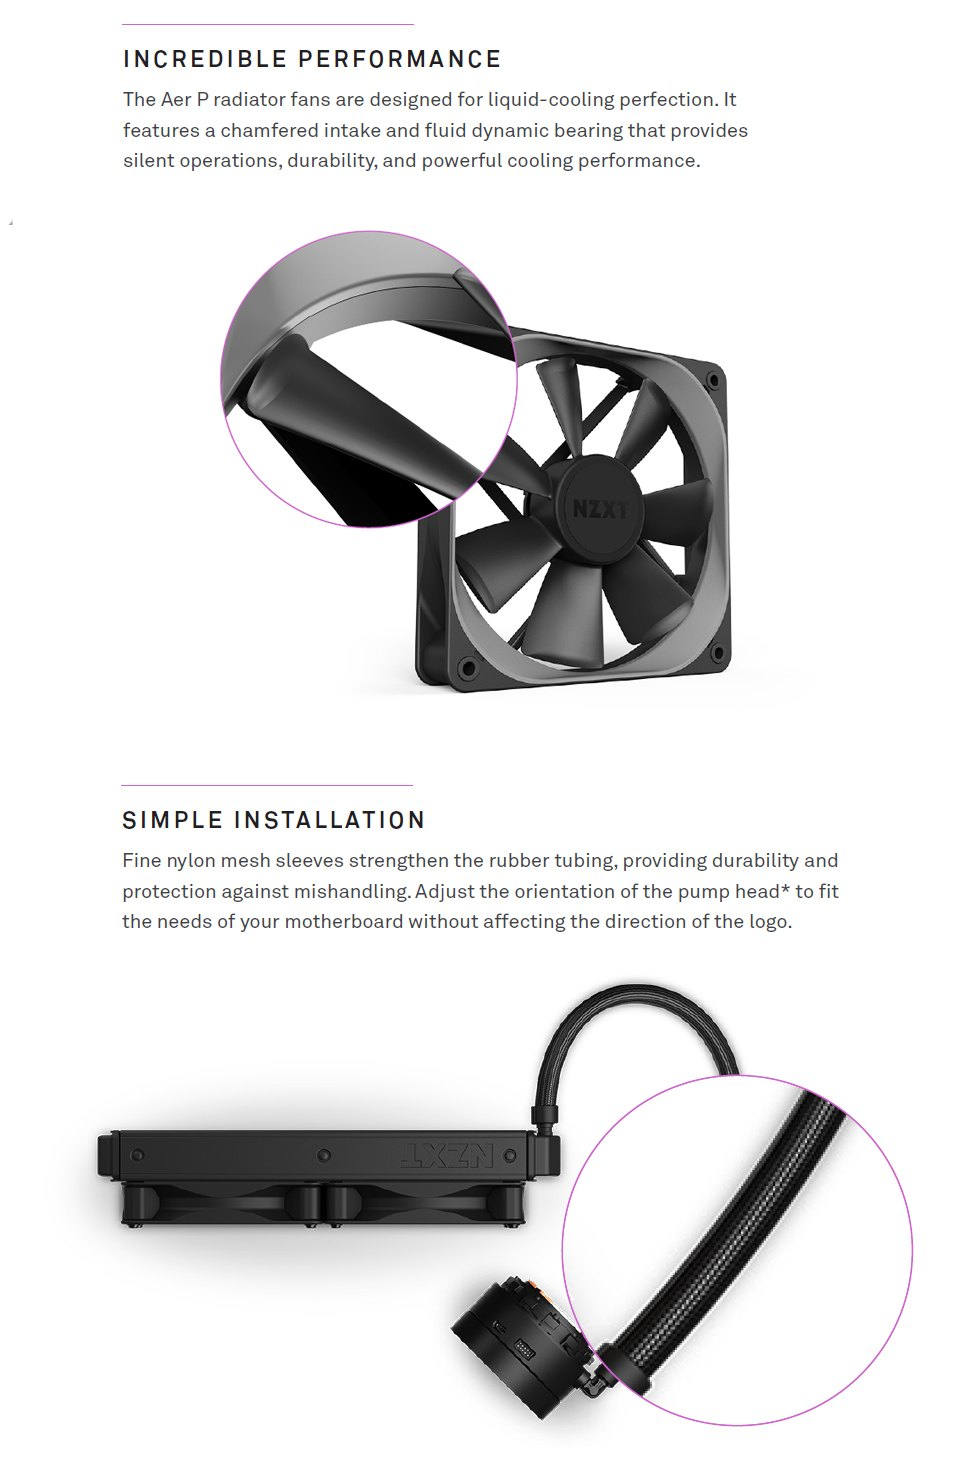 NZXT Kraken X63 280mm AIO Liquid CPU Cooler features 3